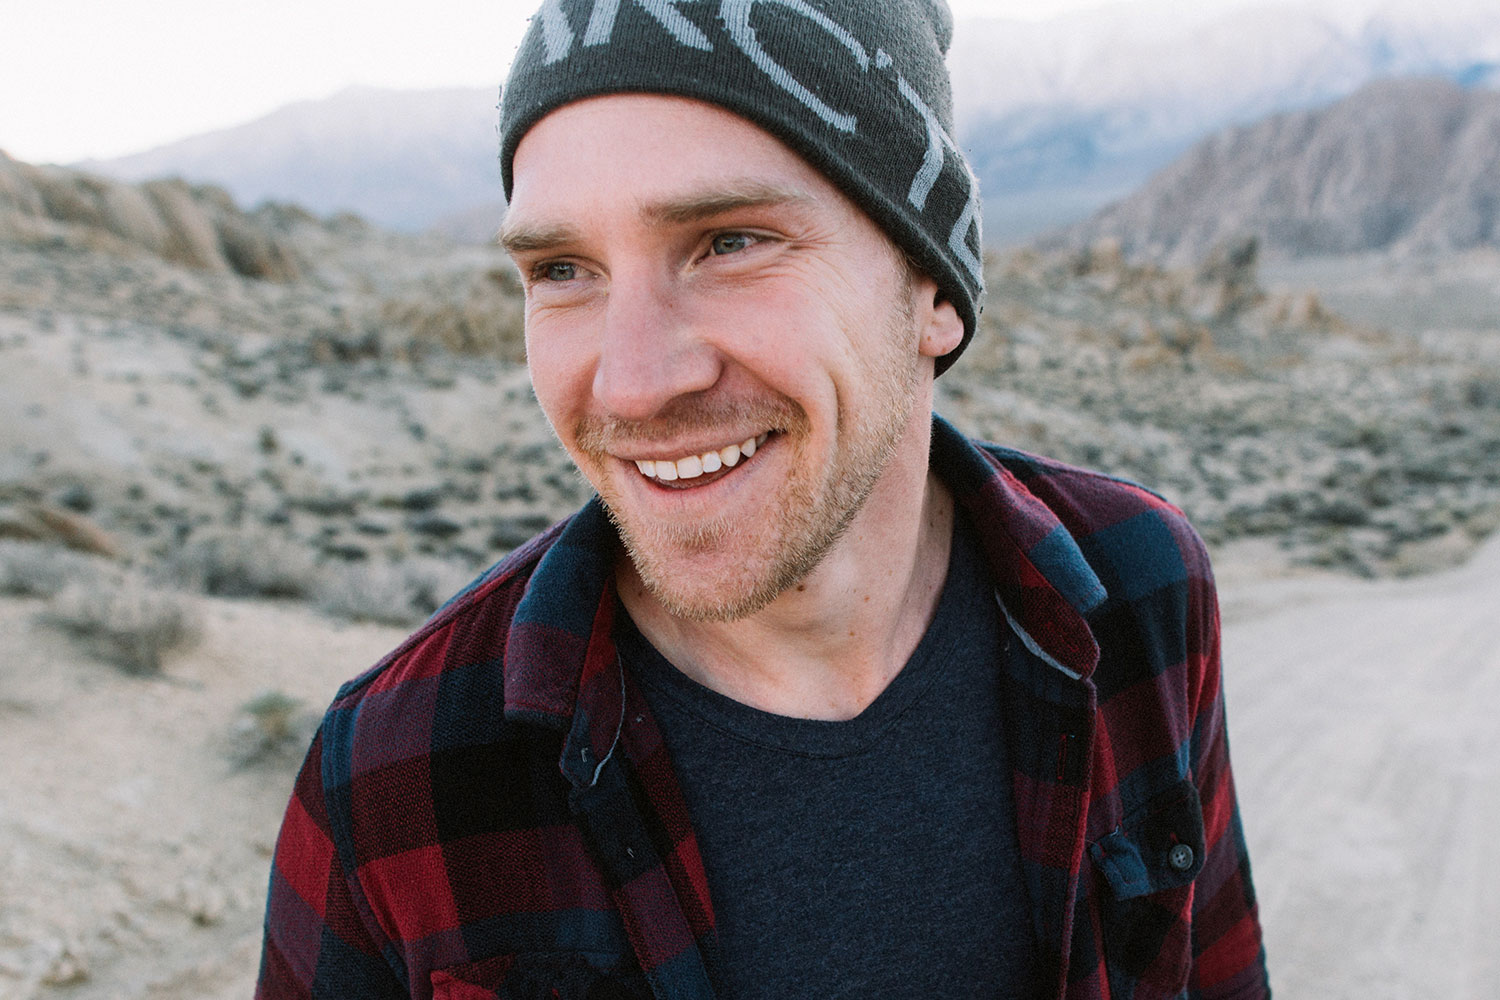 Interview with :   Taylor Burk, Adventure Photographer